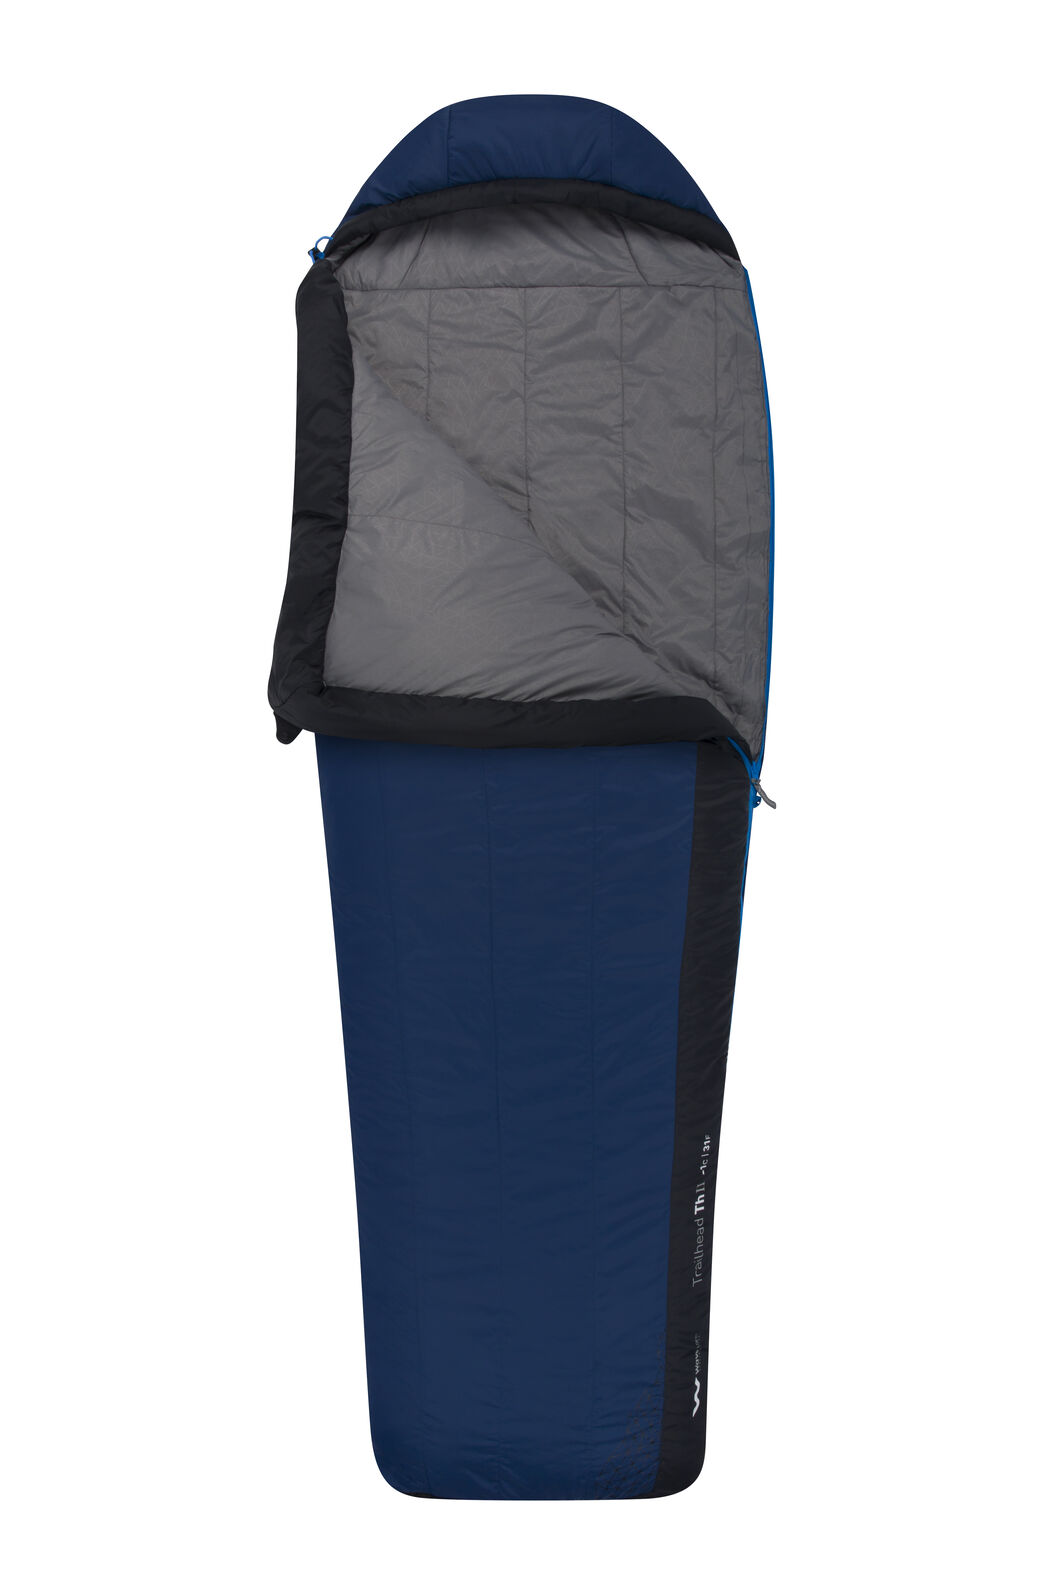 Sea to Summit Trailhead II Sleeping Bag - Long, Dark Blue, hi-res